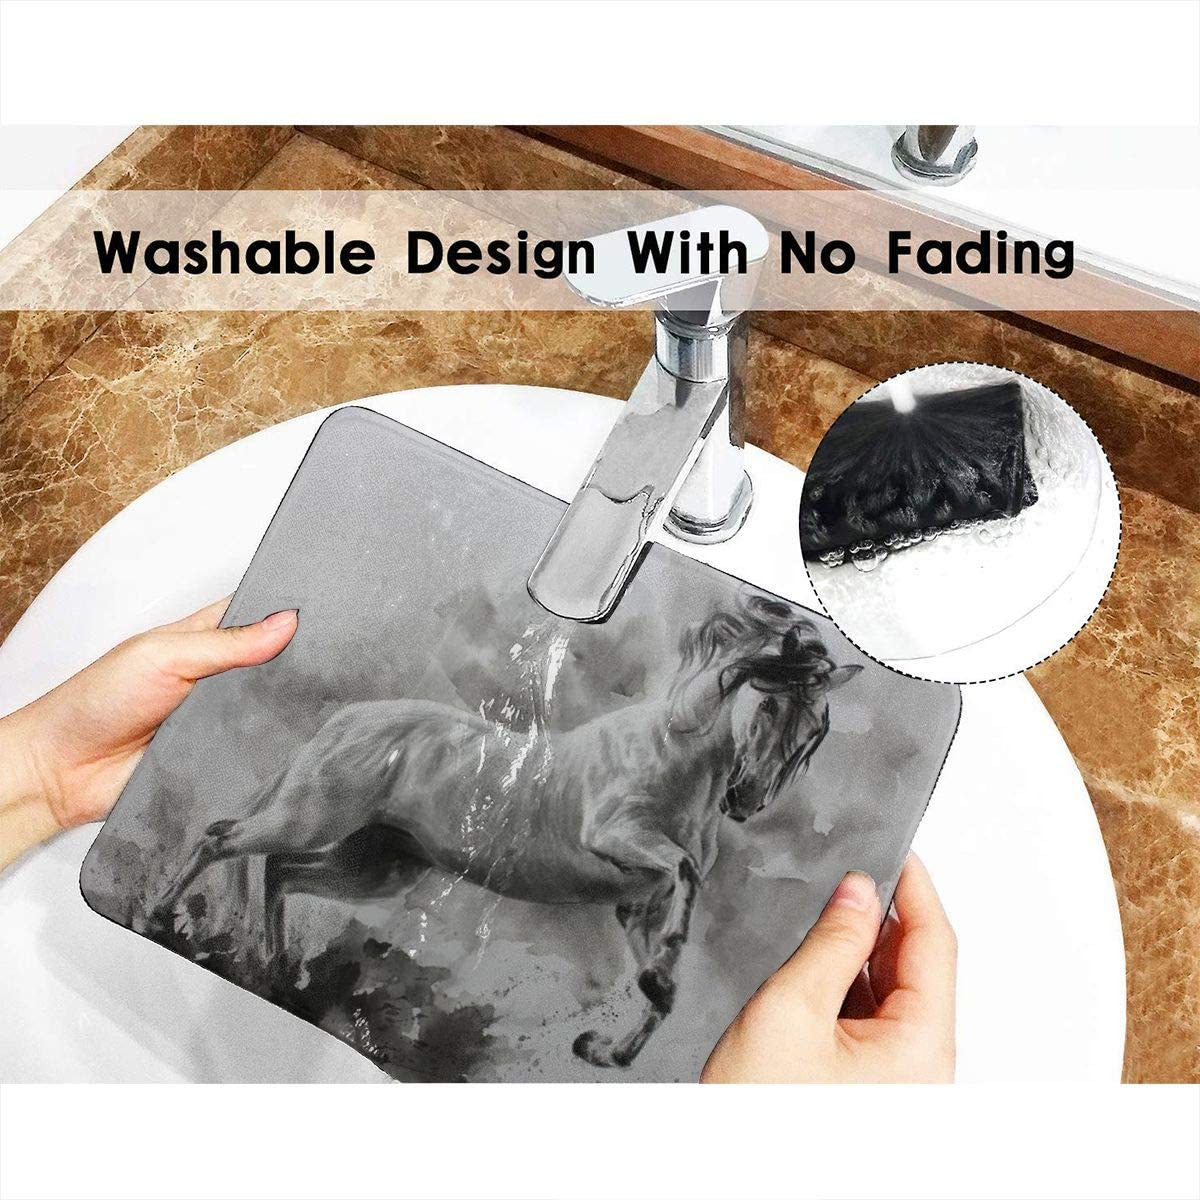 Aoccy Acrylic Painting of Horse On Canvas Gaming Mouse Pad 7.9 X 9.5 in Non-Slip Rectangular Gaming Mouse Pad Anti-Slip Mouse Pad